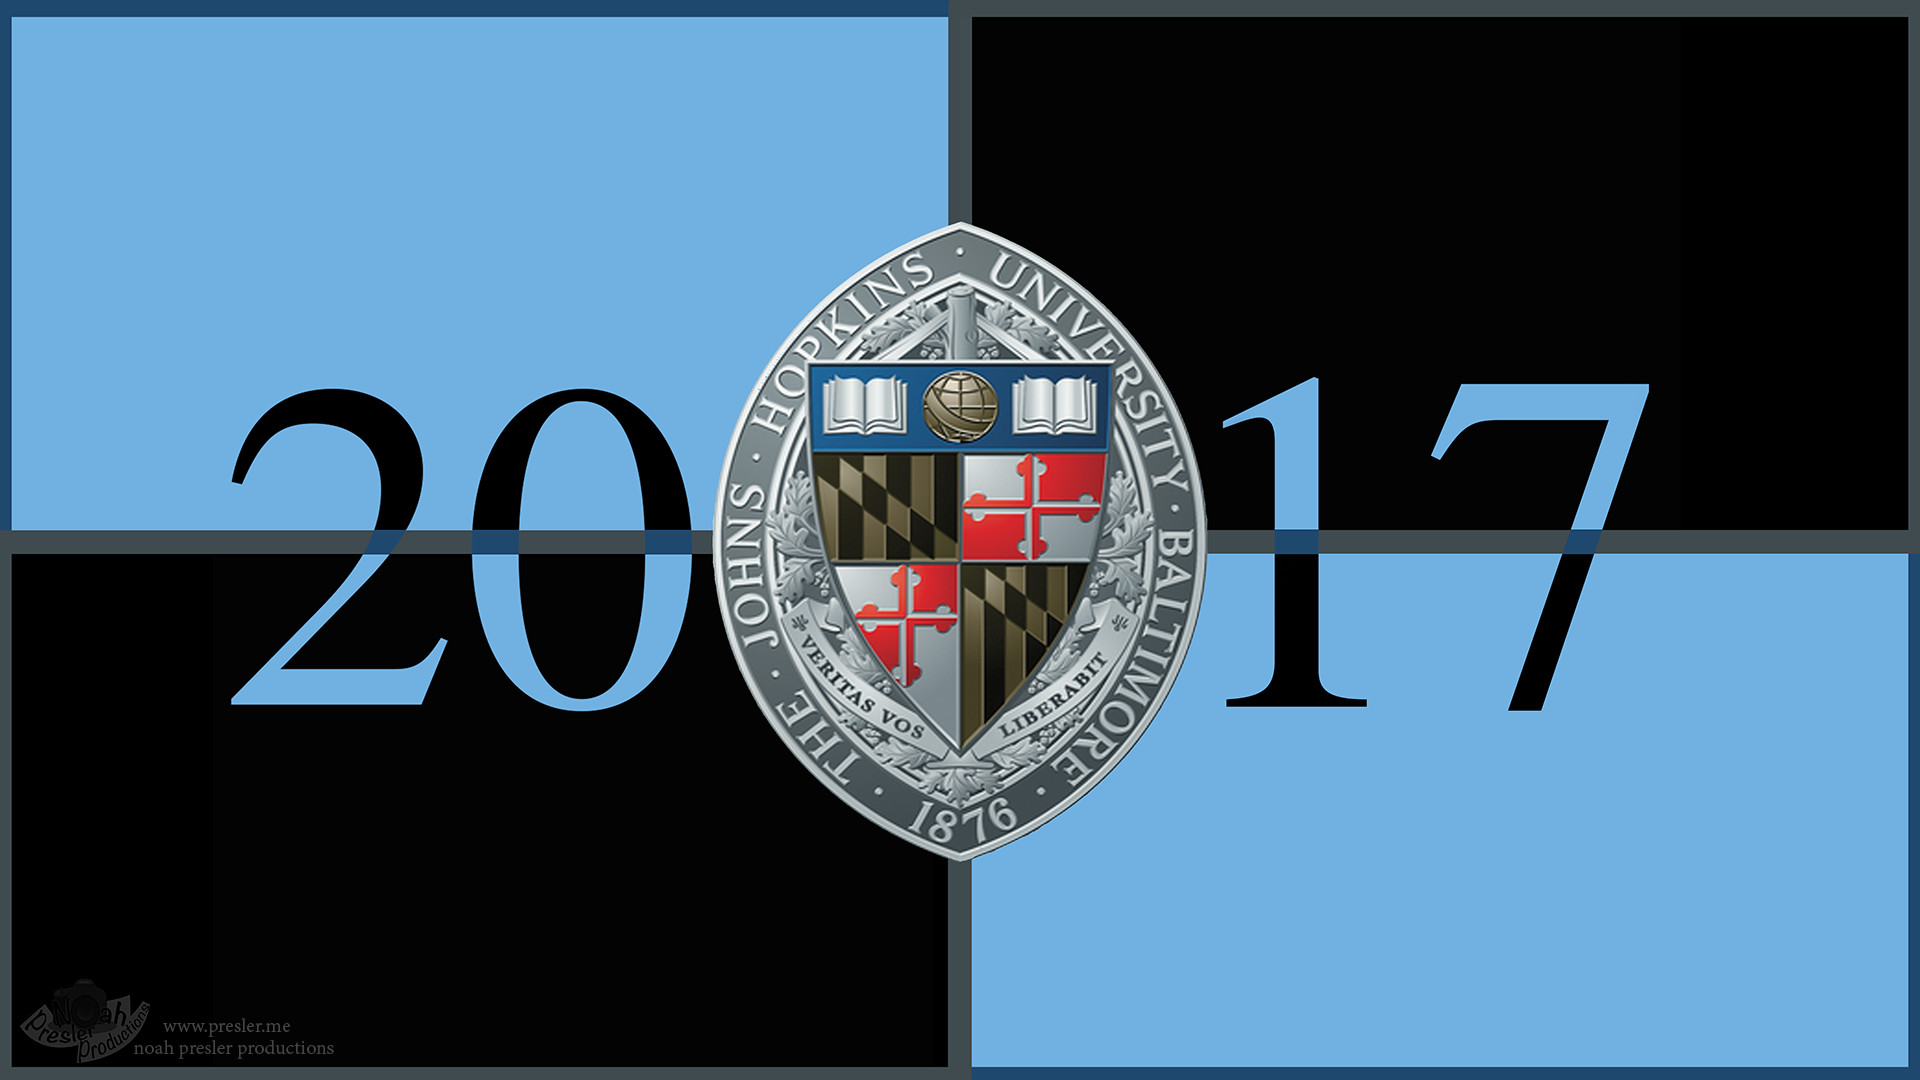 Res: 1920x1080, Johns Hopkins Lacrosse Wallpaper  johns hopkins seal